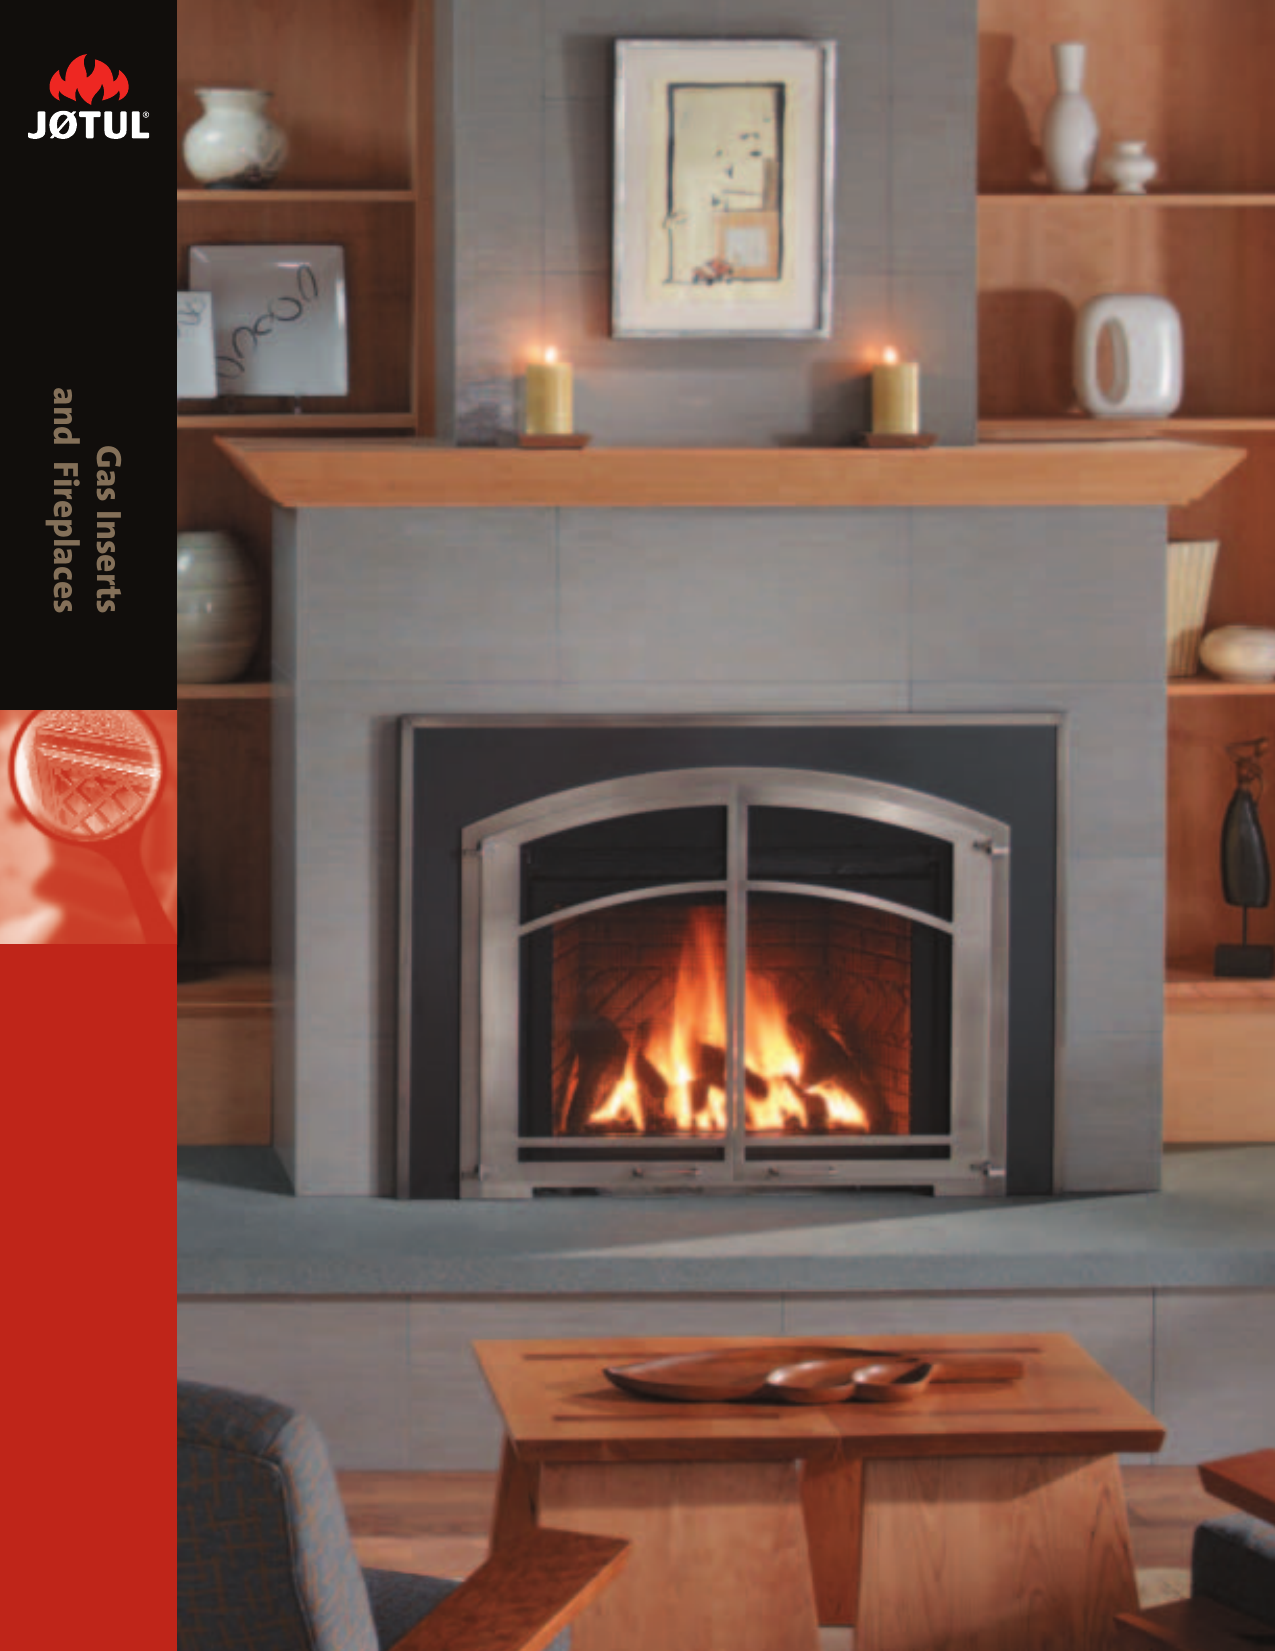 Jotul Gas Inserts And Fireplaces Users Manual